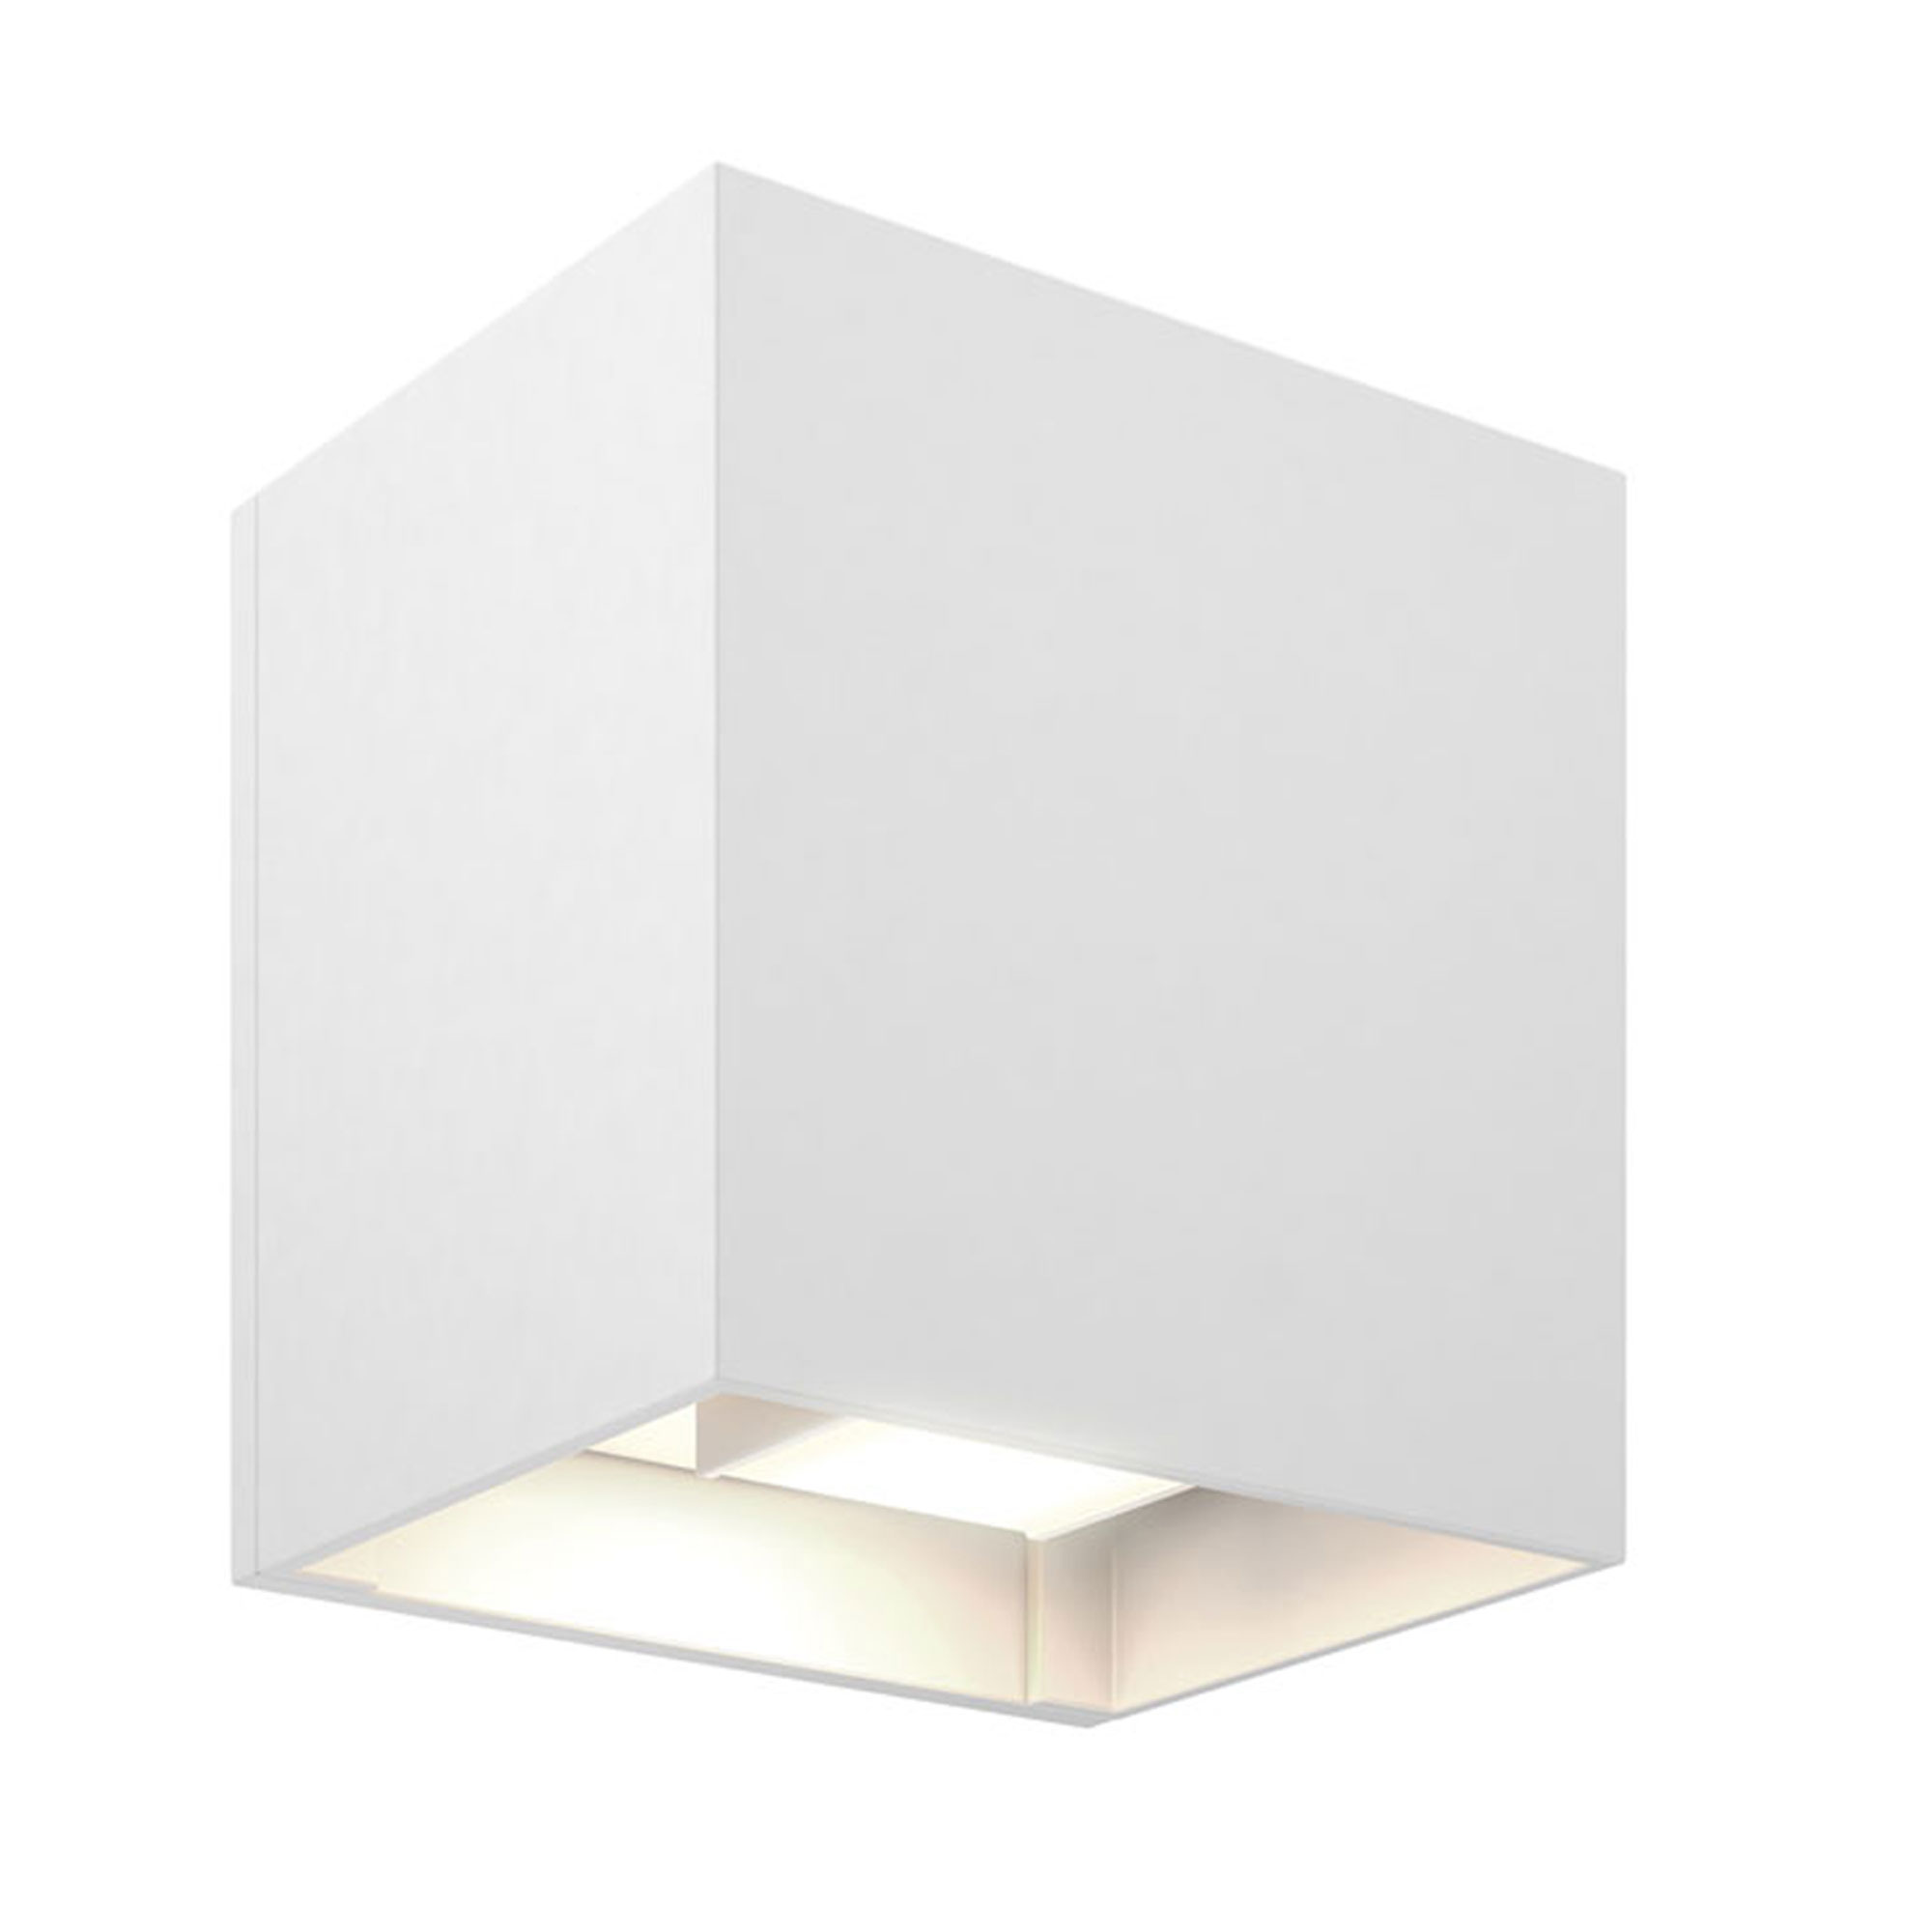 official photos 0cb09 811f1 LEDWALL-G Cube Outdoor Wall Sconce by DALS Lighting | LEDWALL-G-WH